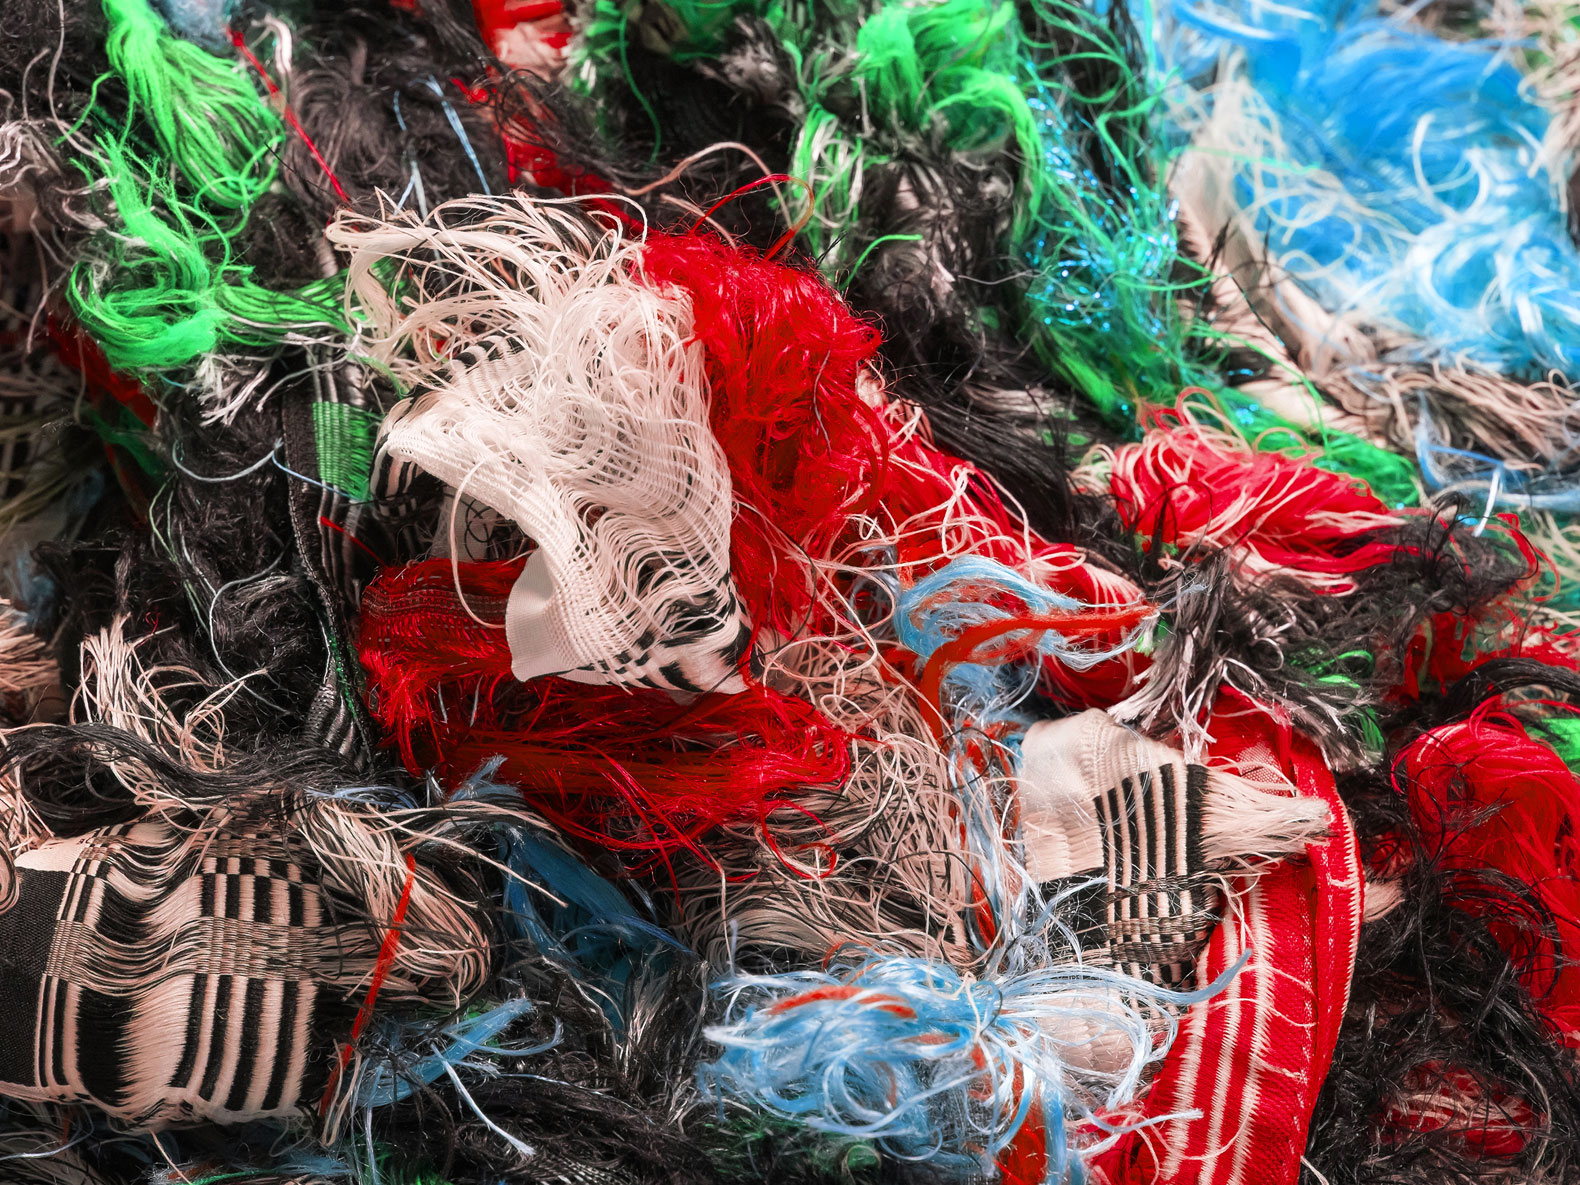 EU Launches Initiative To Reduce Textile Waste